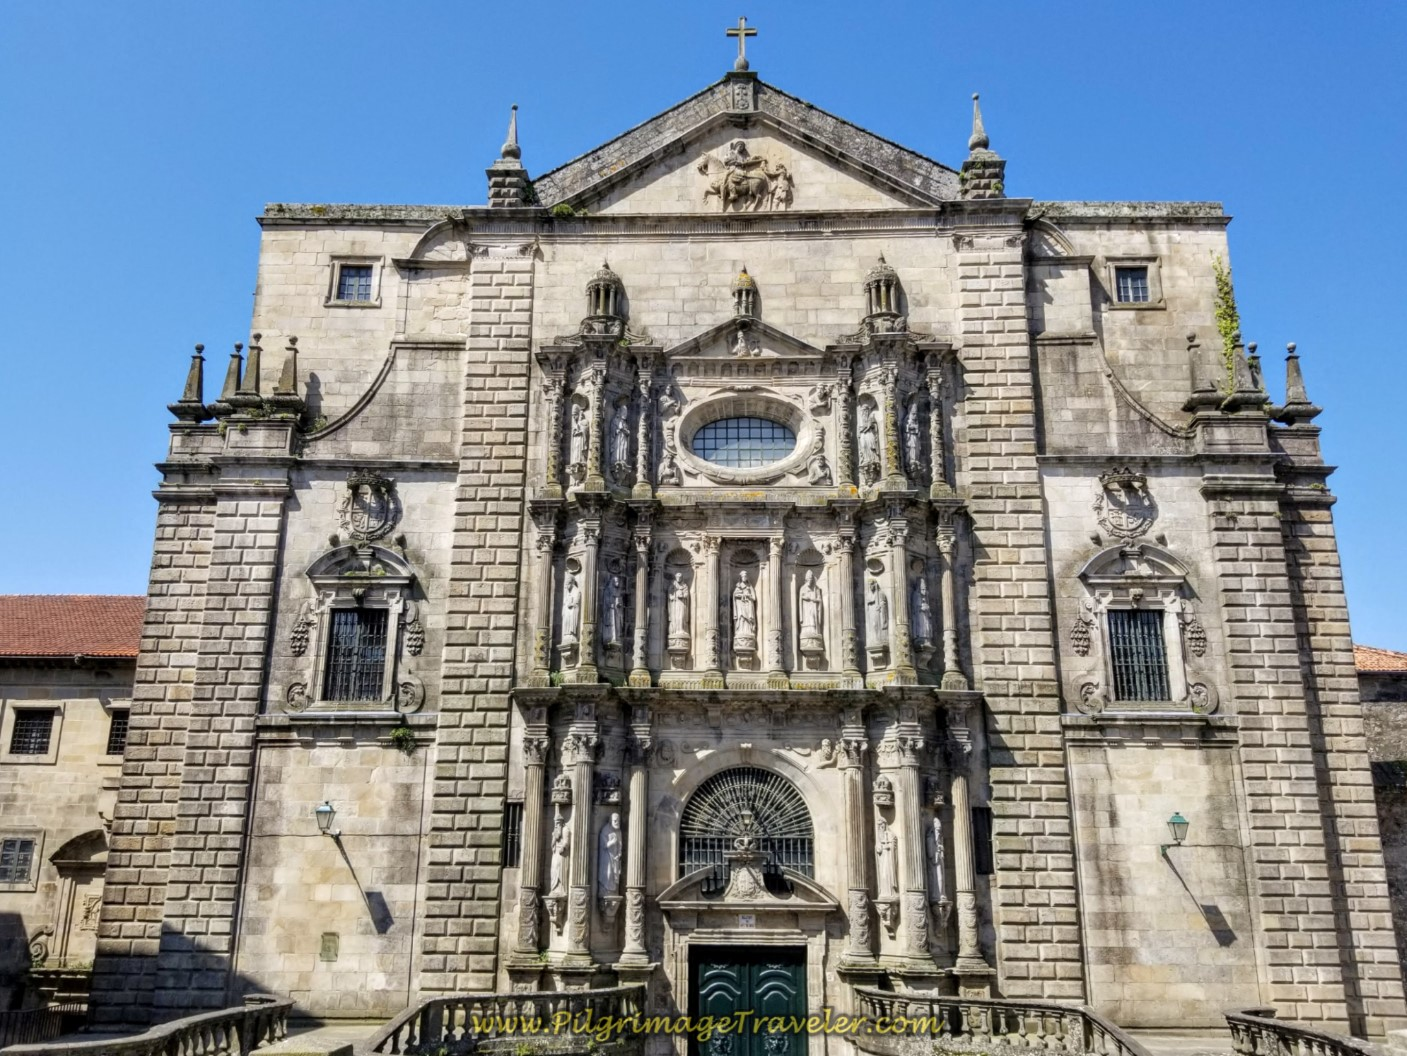 Pass By the Church in the Praza de San Martiño on day eight of the English Way